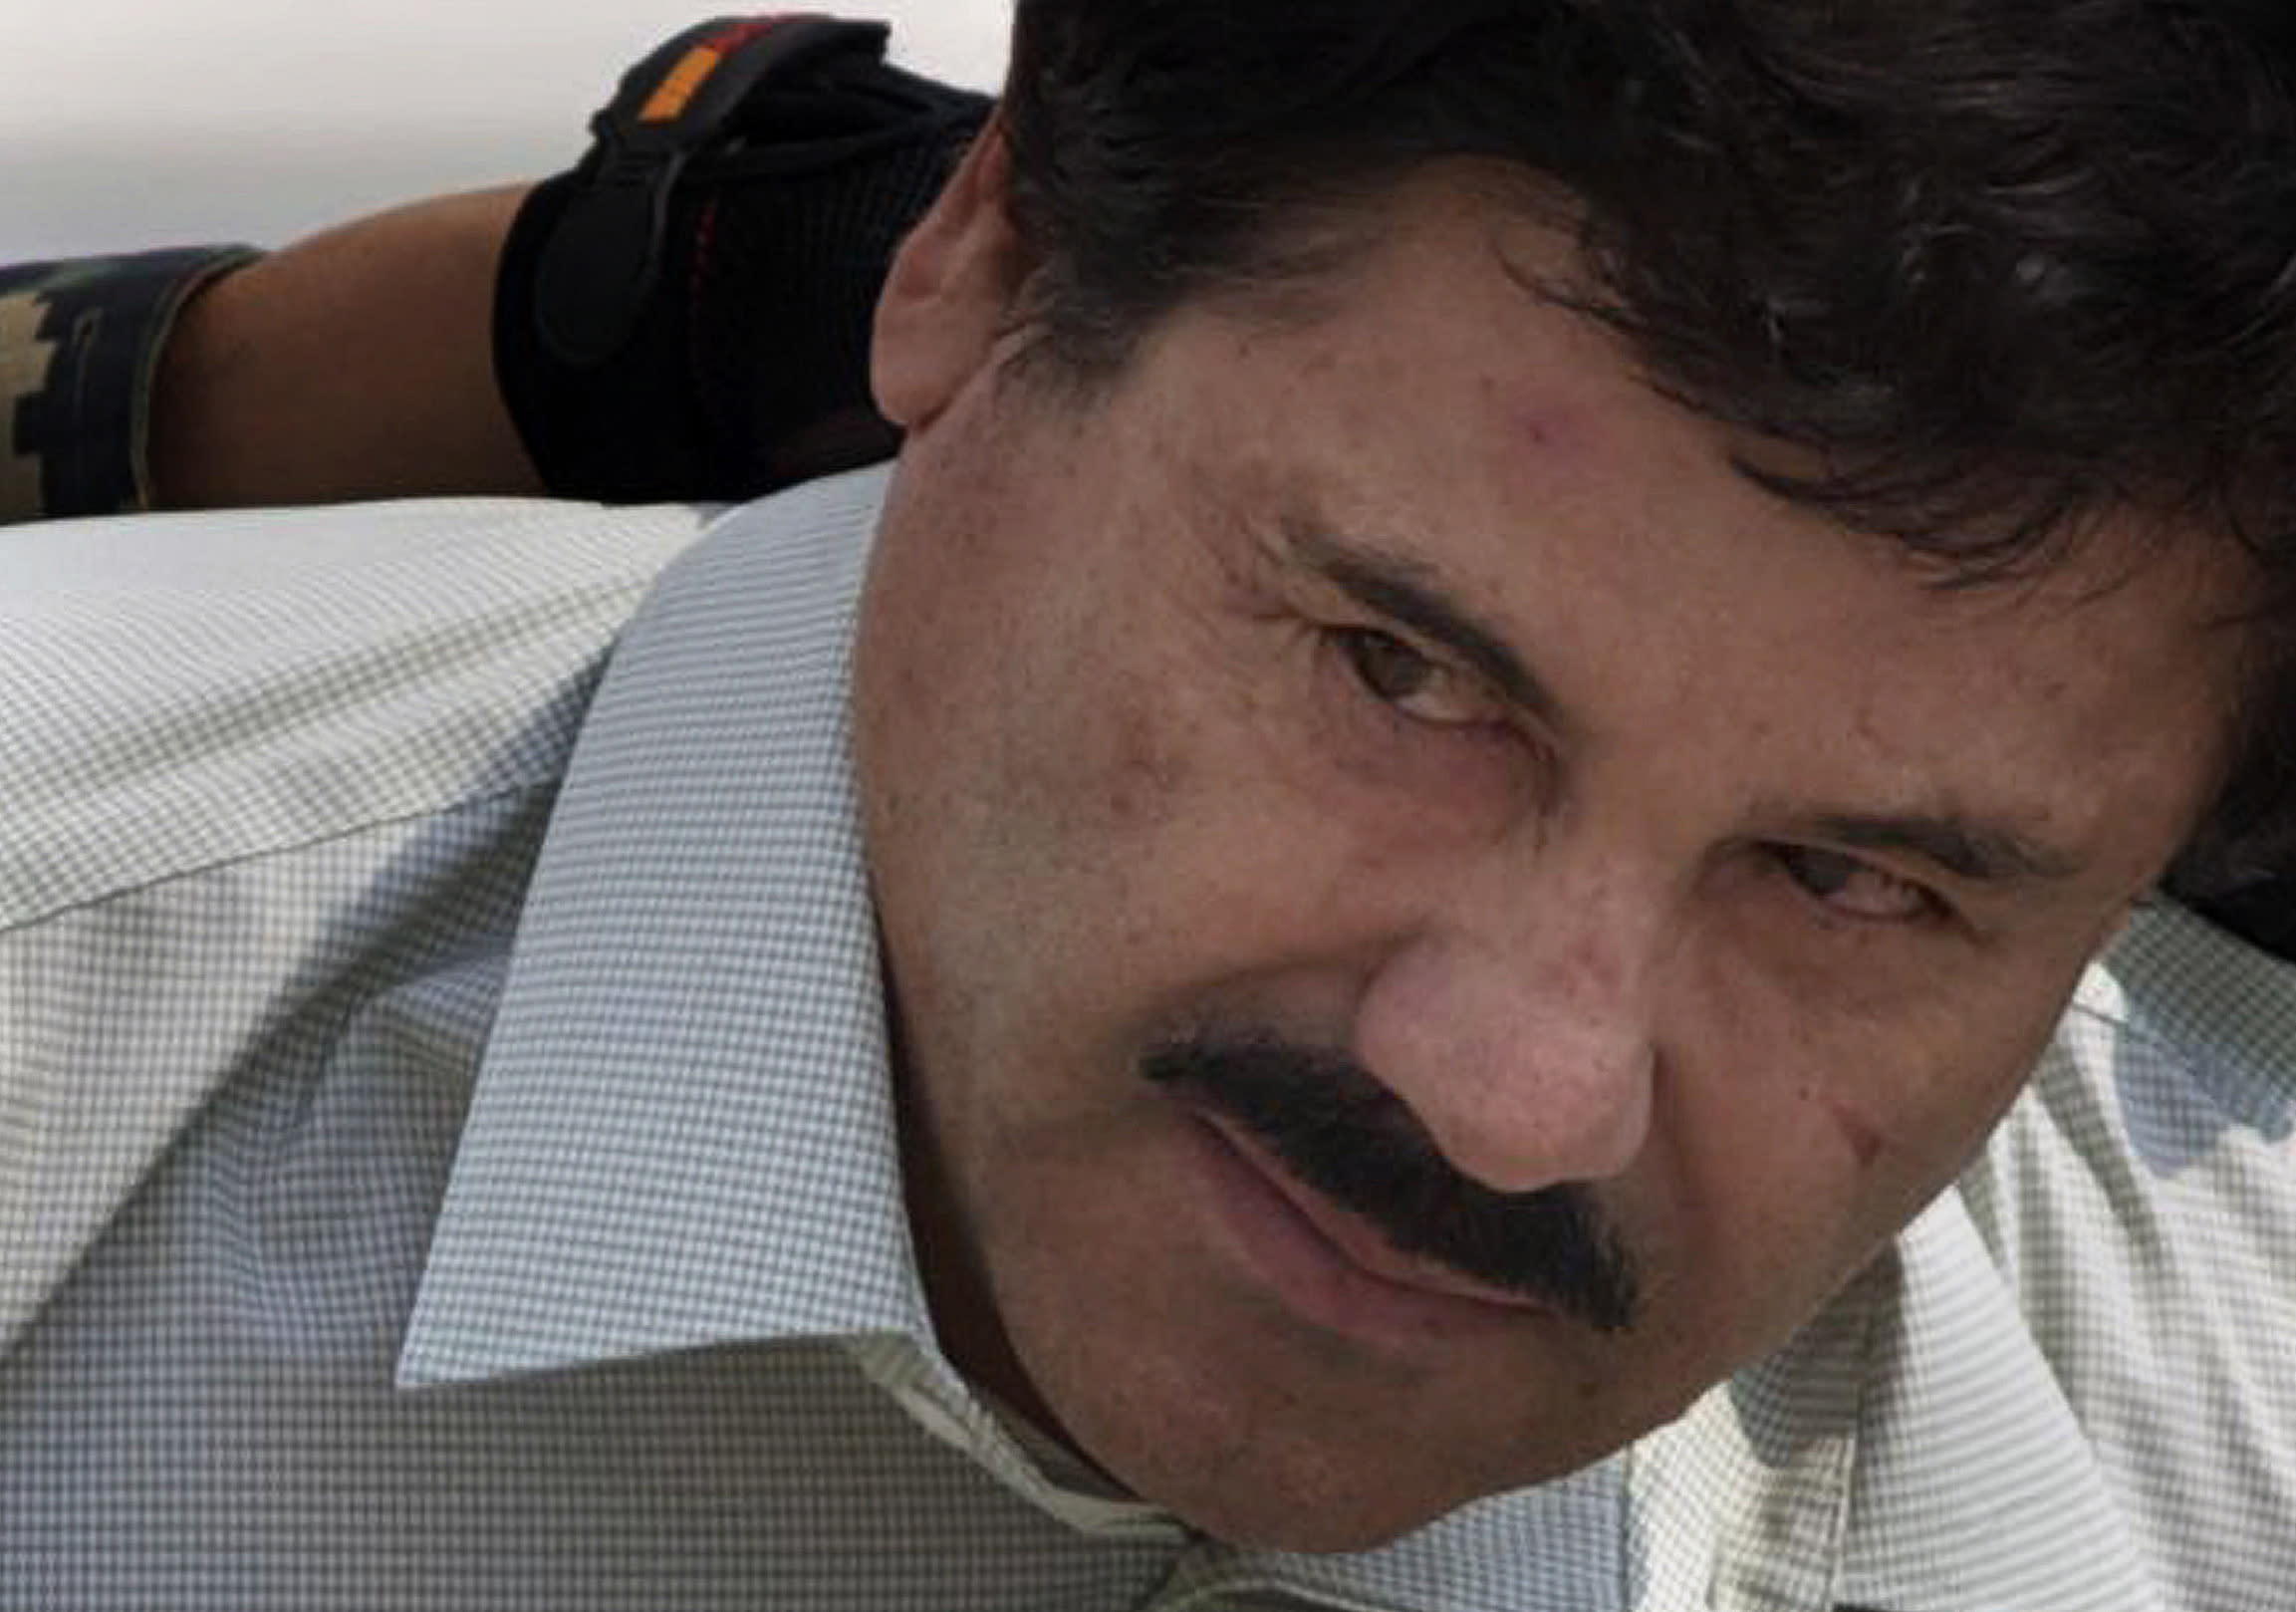 Within Hours Of His Sentencing, El Chapo Was Whisked Away To Supermax